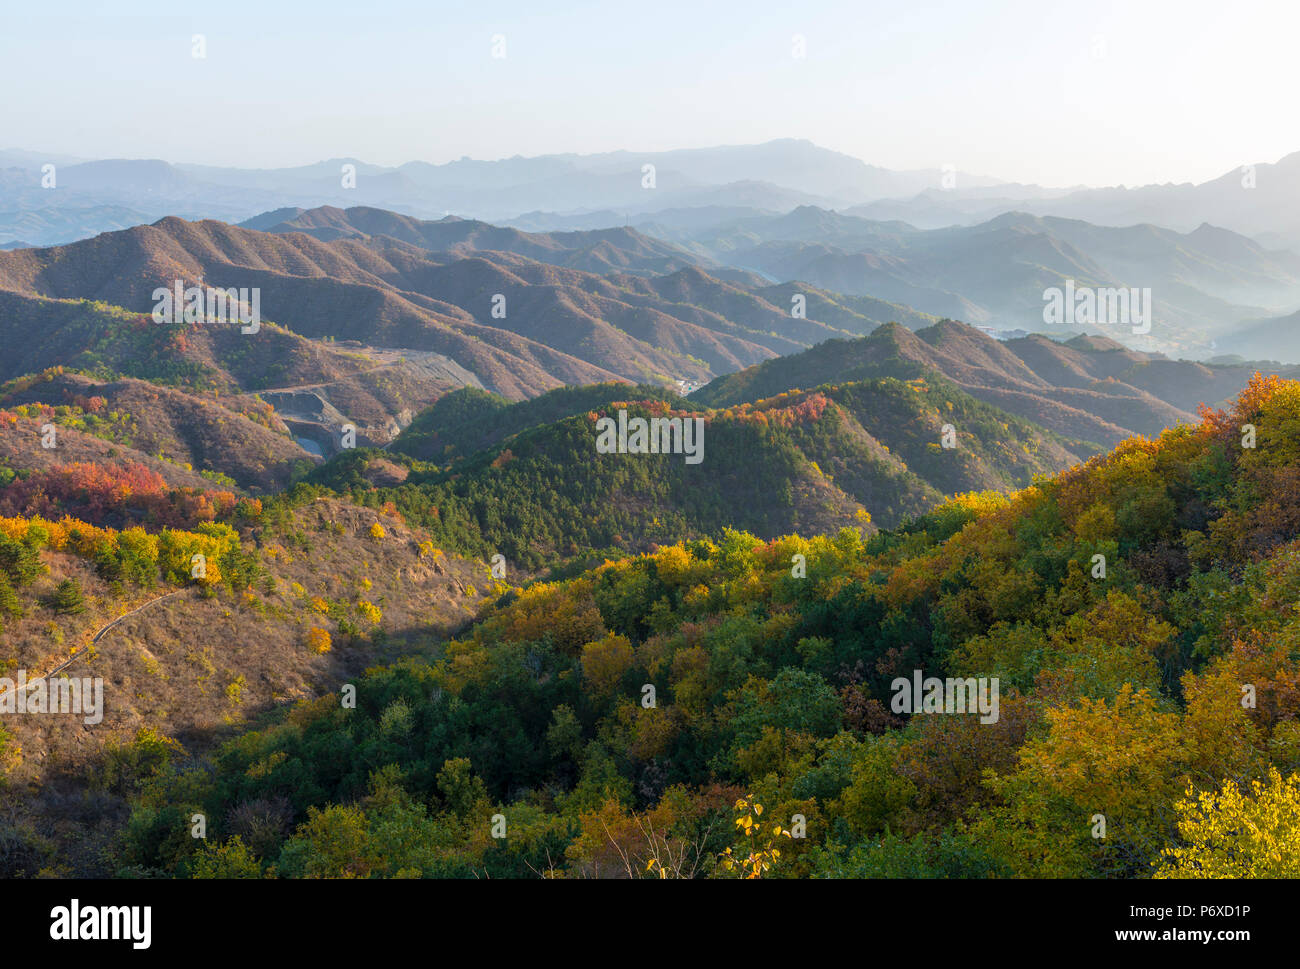 China, Hebei Province, Luanping County, Jinshanling, Great Wall of China - Stock Image